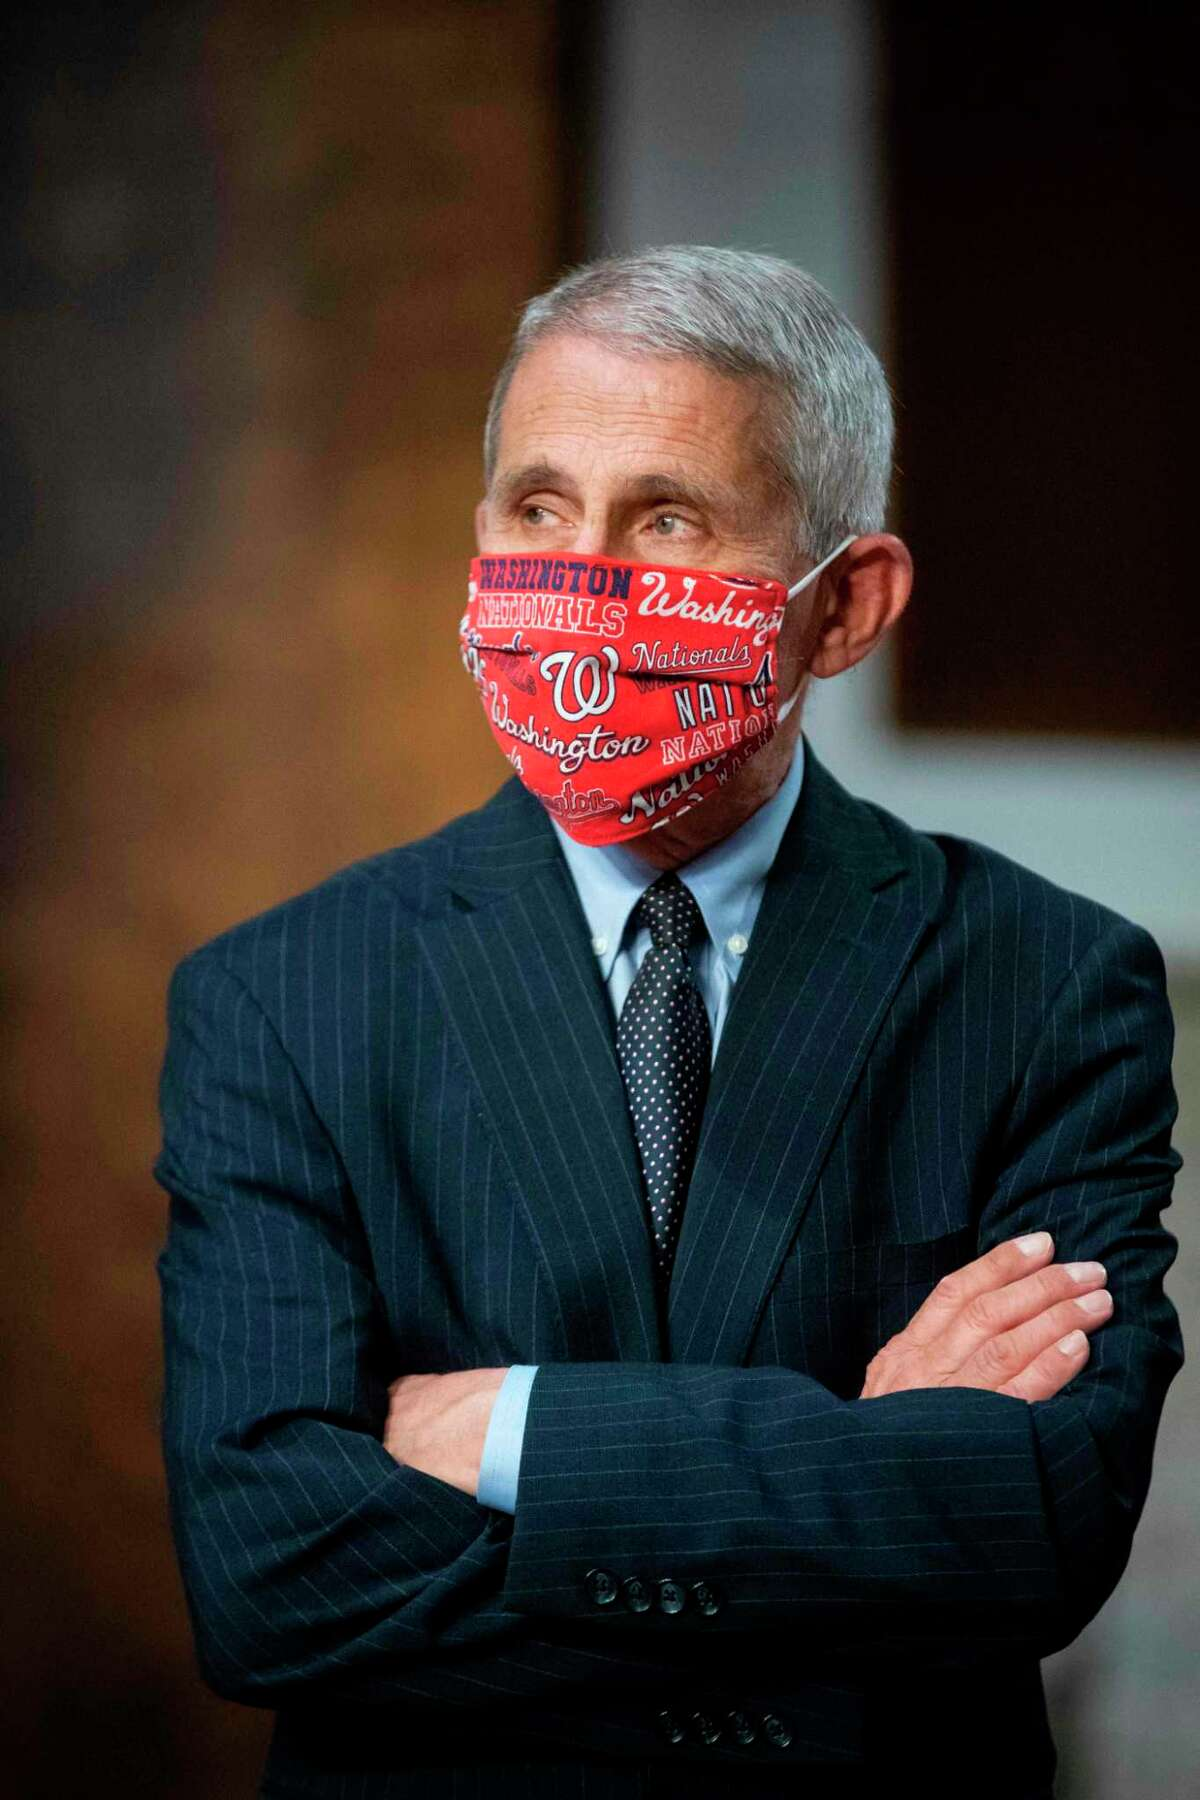 Dr. Anthony Fauci, director of the National Institute of Allergy and Infectious Diseases, arrives to testify at a Senate Health, Education, Labor and Pensions Committee hearing in Washington, D.C. on June 30, 2020.